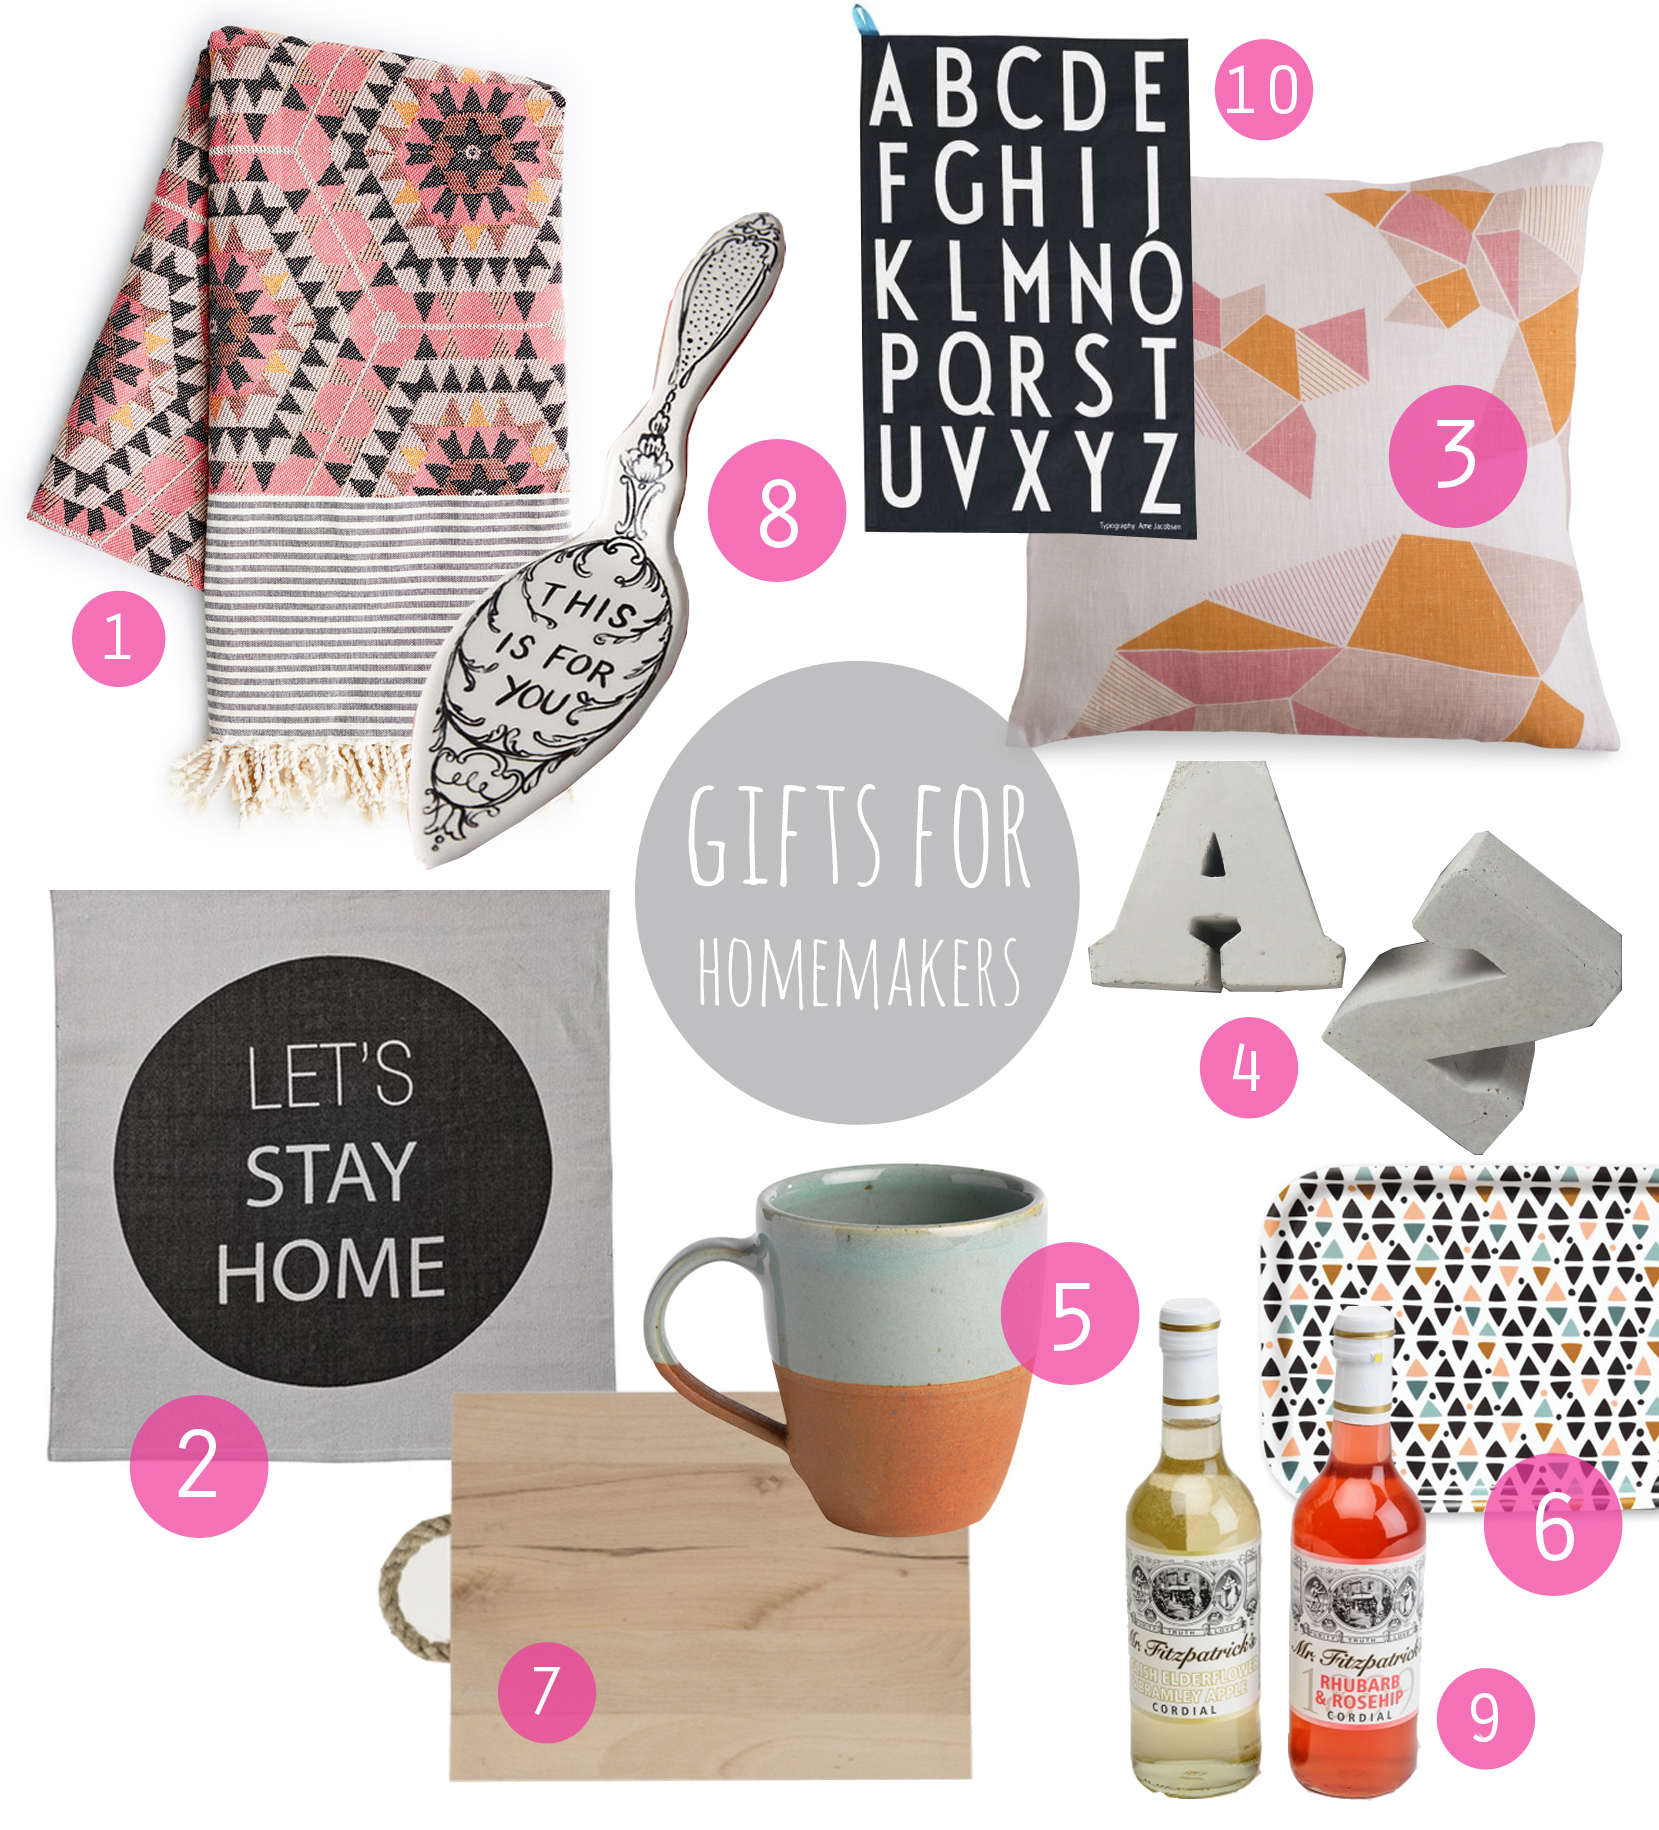 Christmas gifts for homemakers